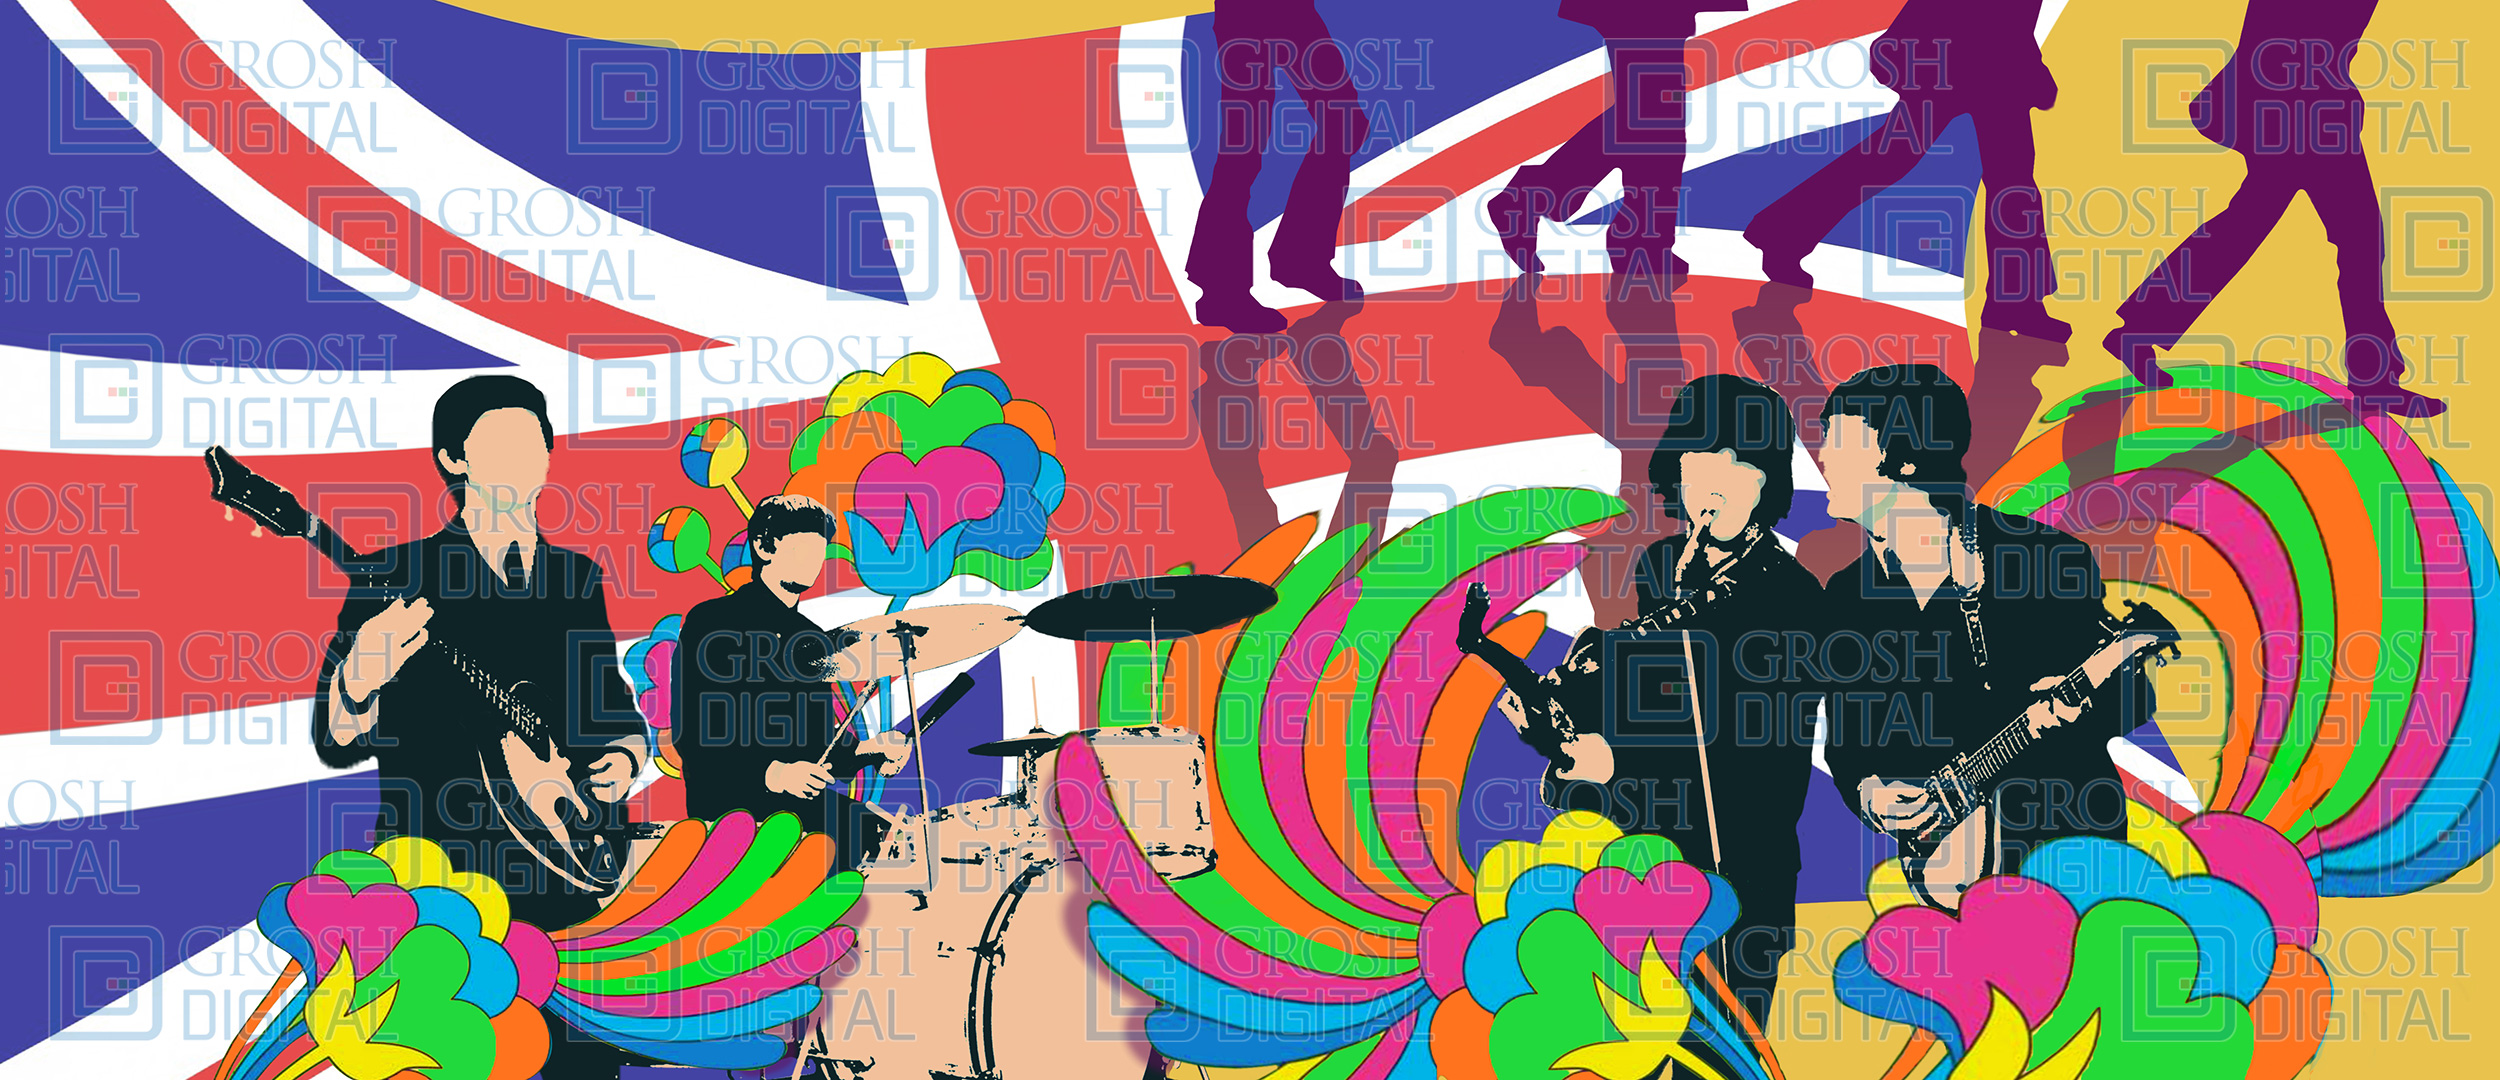 The fab four projected backdrops grosh digital the fab four projected backdrop for abstract dance malvernweather Image collections